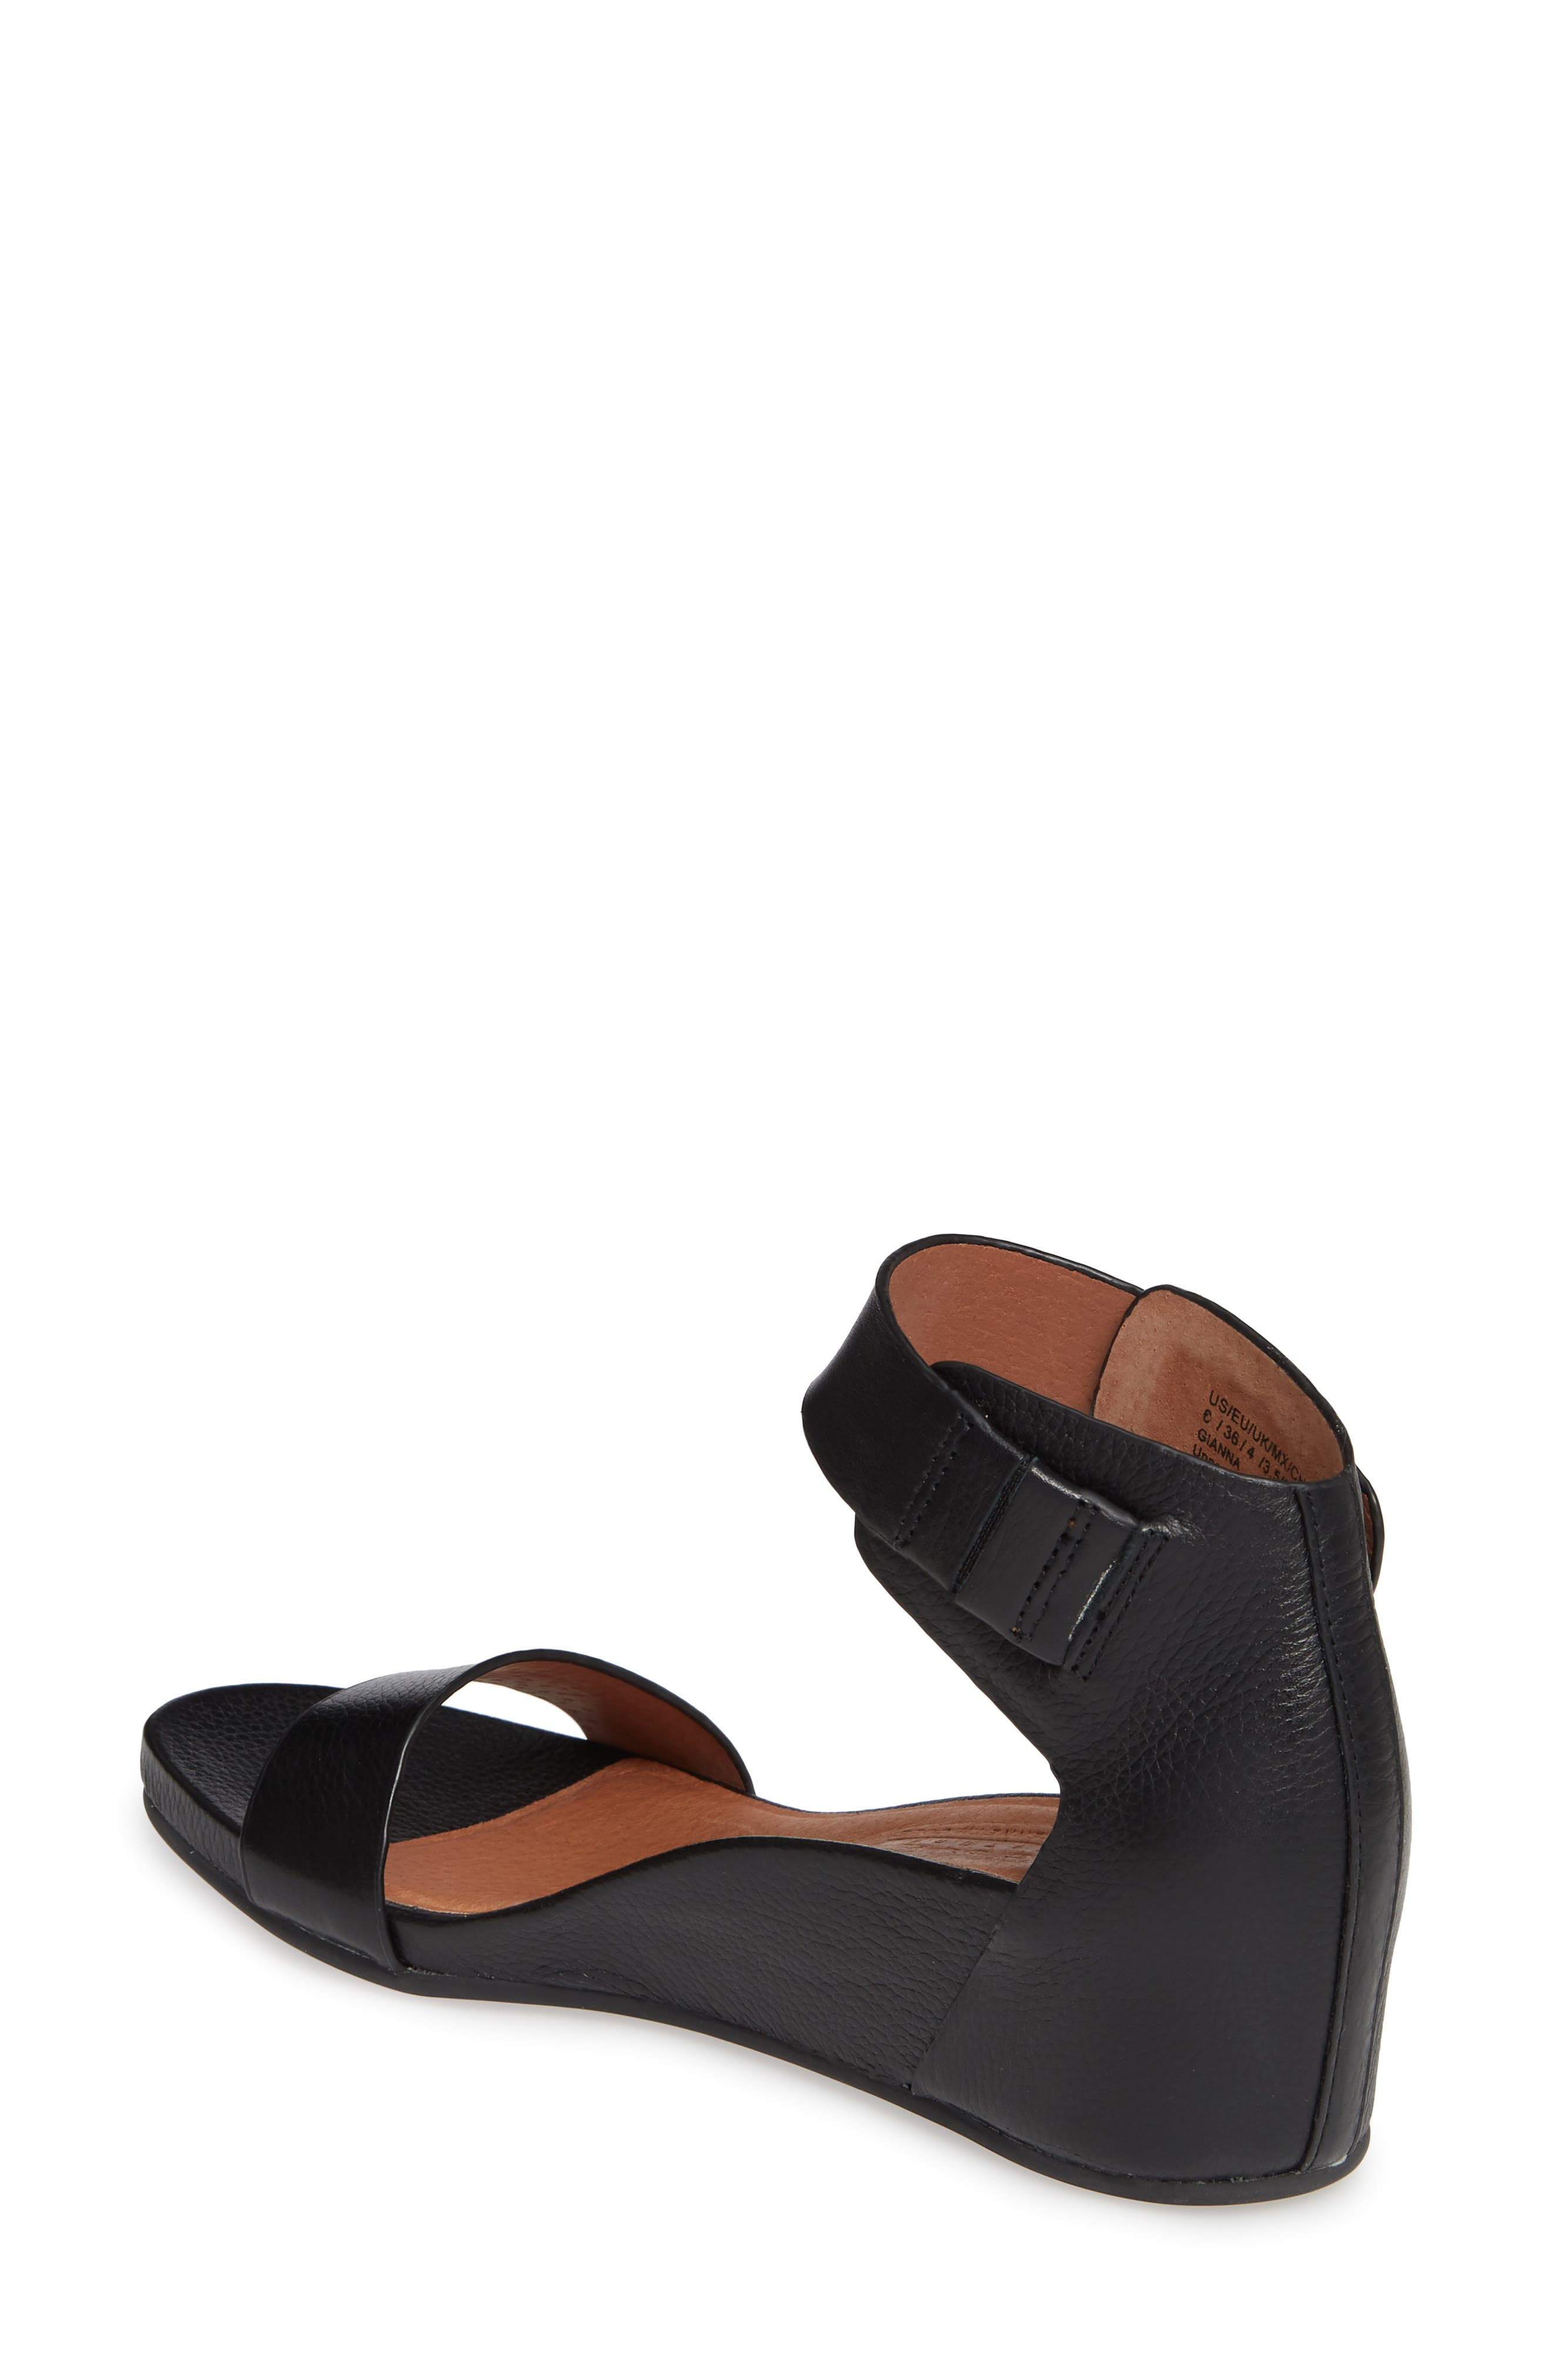 GENTLE SOULS SIGNATURE, Gianna Wedge Sandal, Alternate thumbnail 2, color, BLACK LEATHER